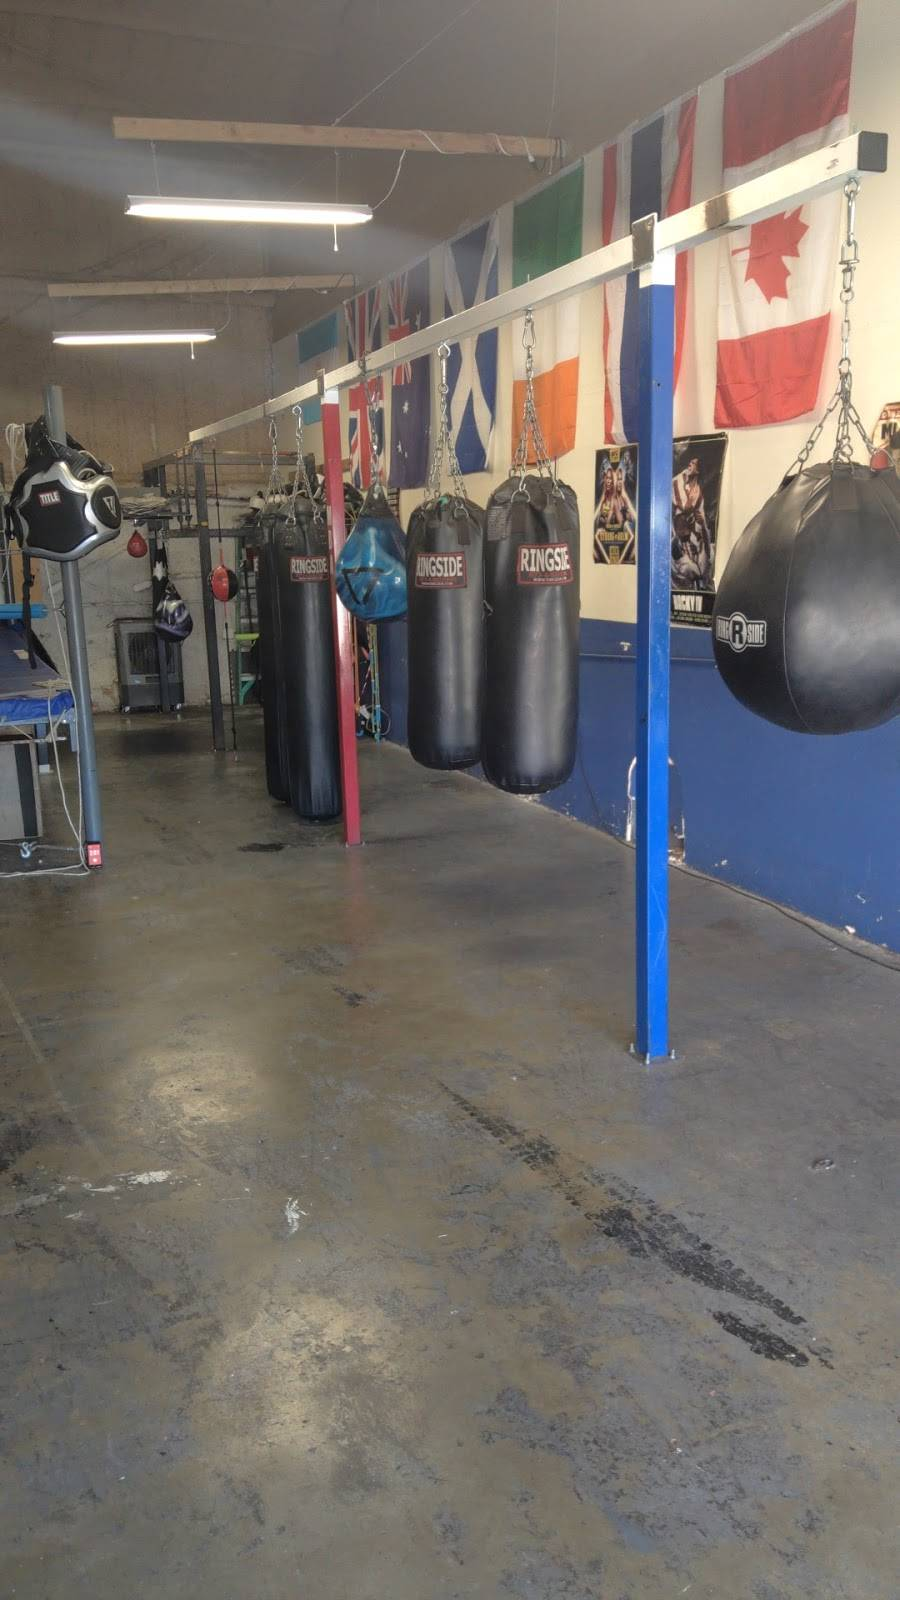 MBA Boxing Gym - gym  | Photo 2 of 3 | Address: 401 Farm to Market 685 #204, Pflugerville, TX 78660, USA | Phone: (512) 736-8443